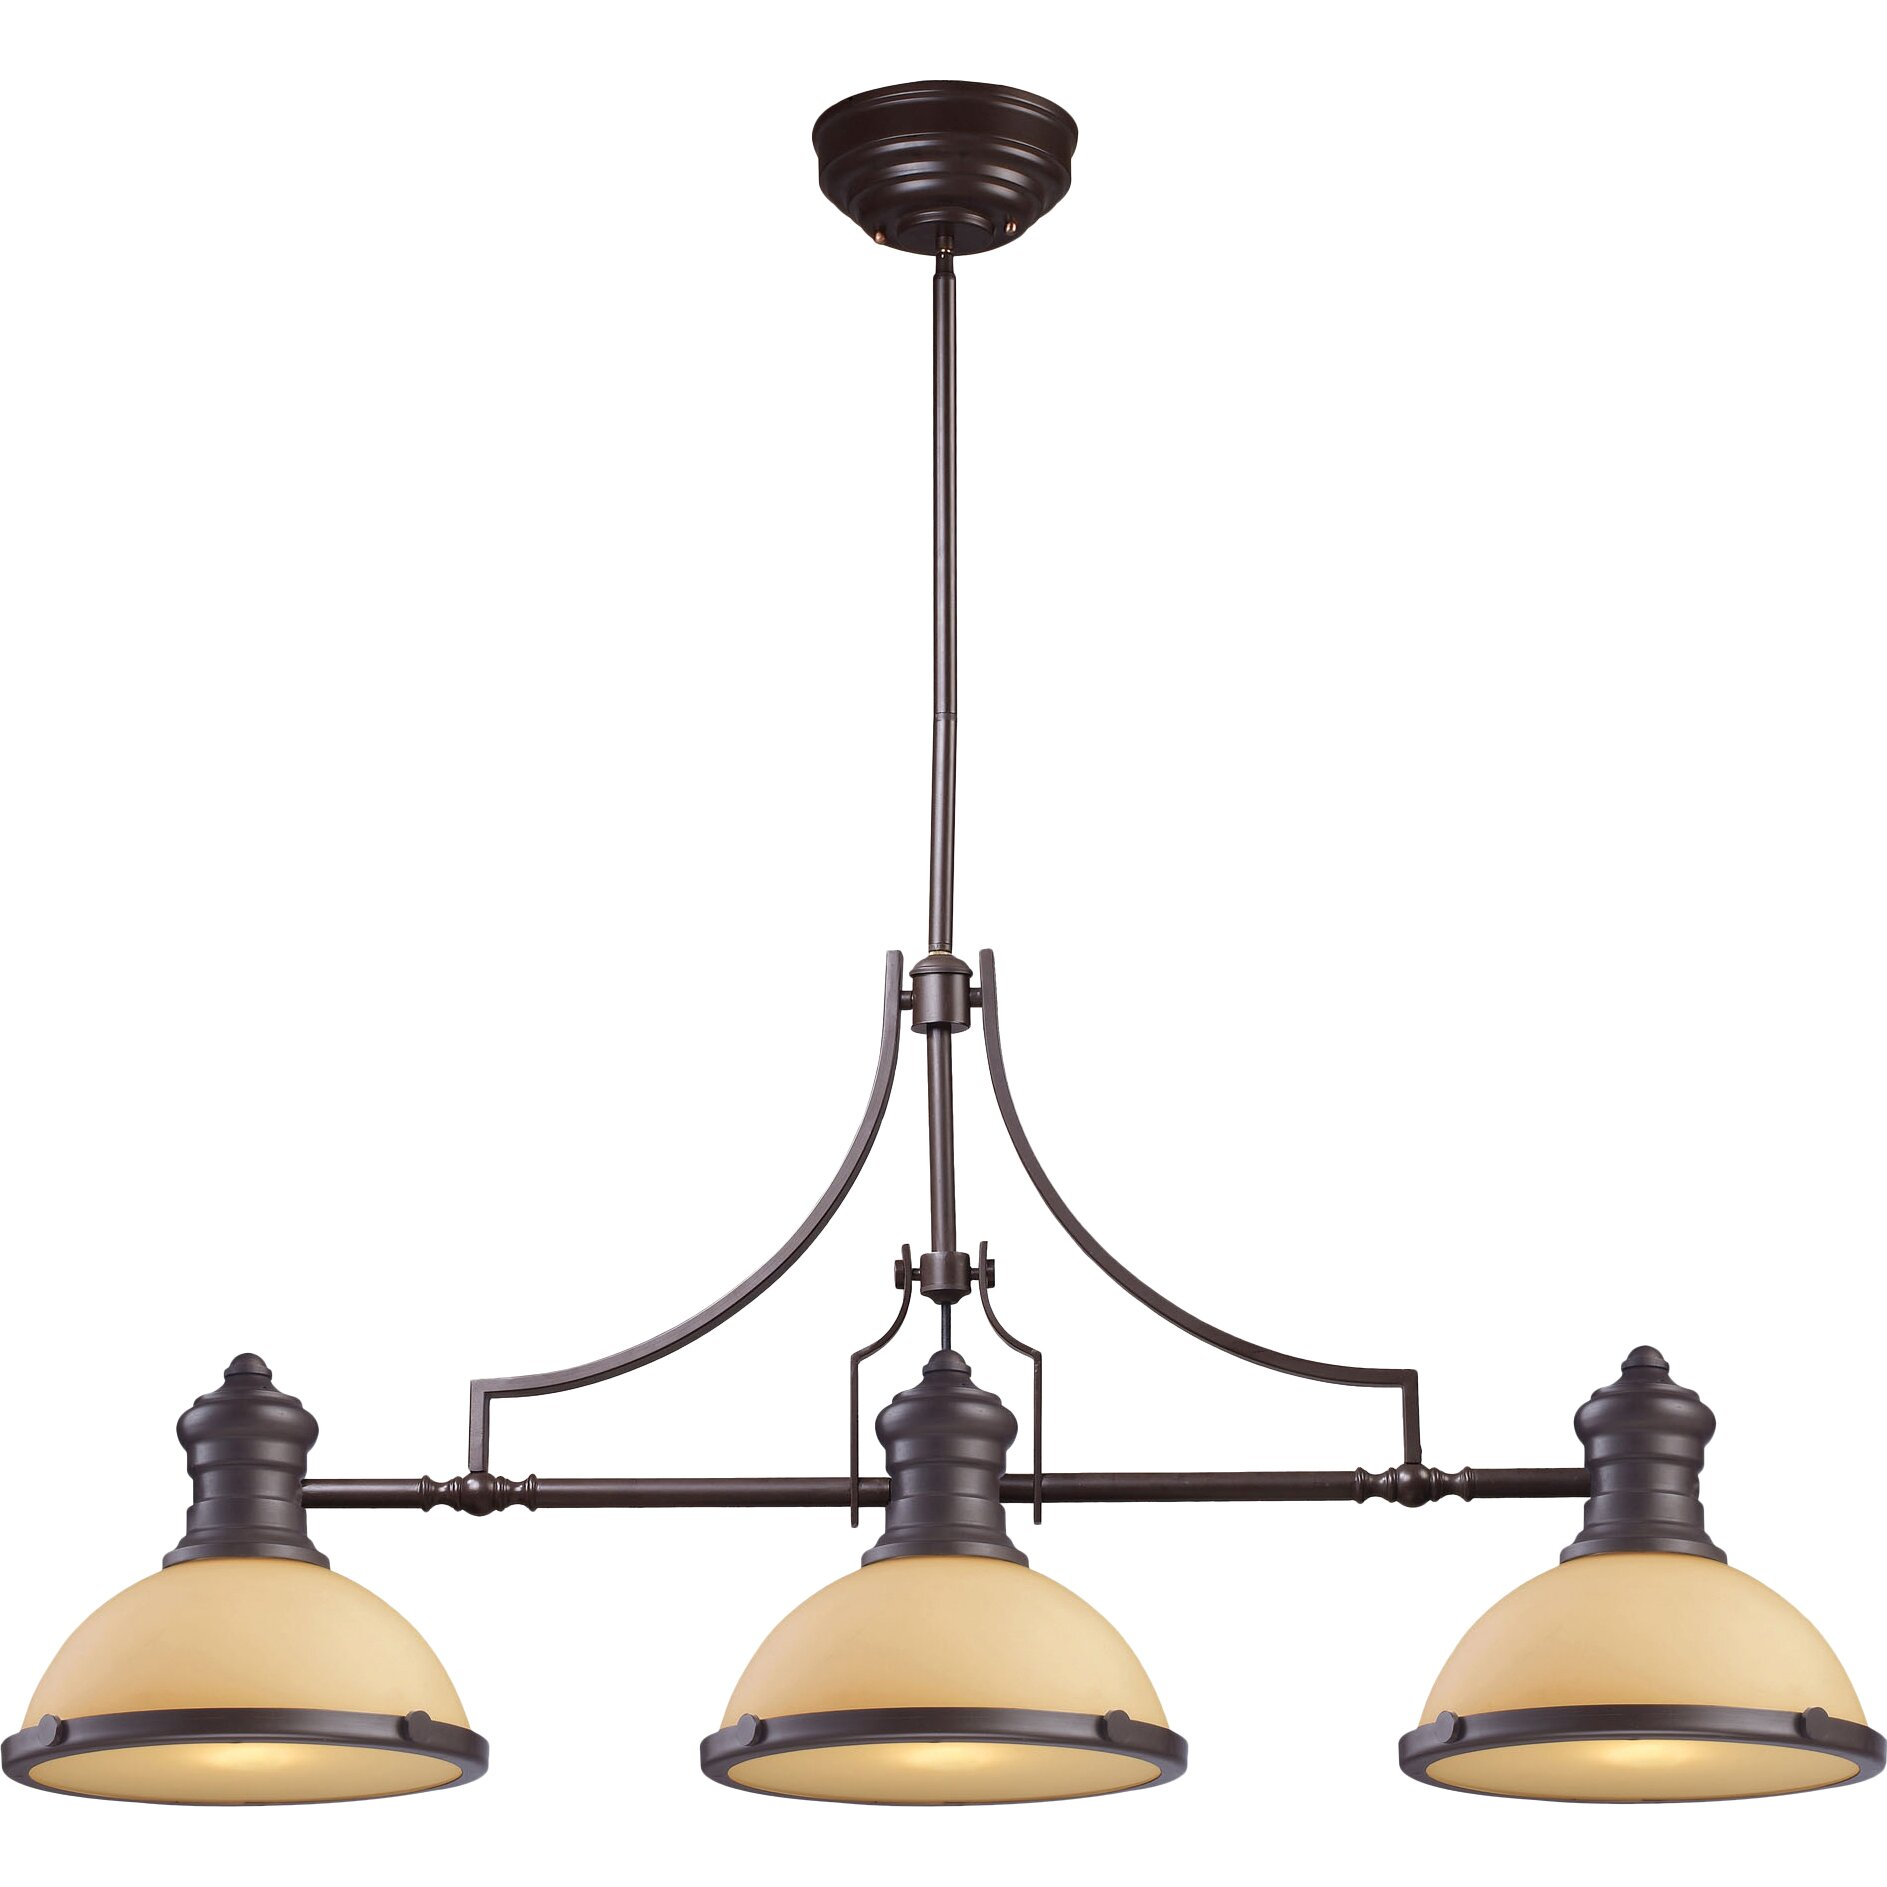 Wayfair Lights: Chadwick 3 Light Pool Table Light